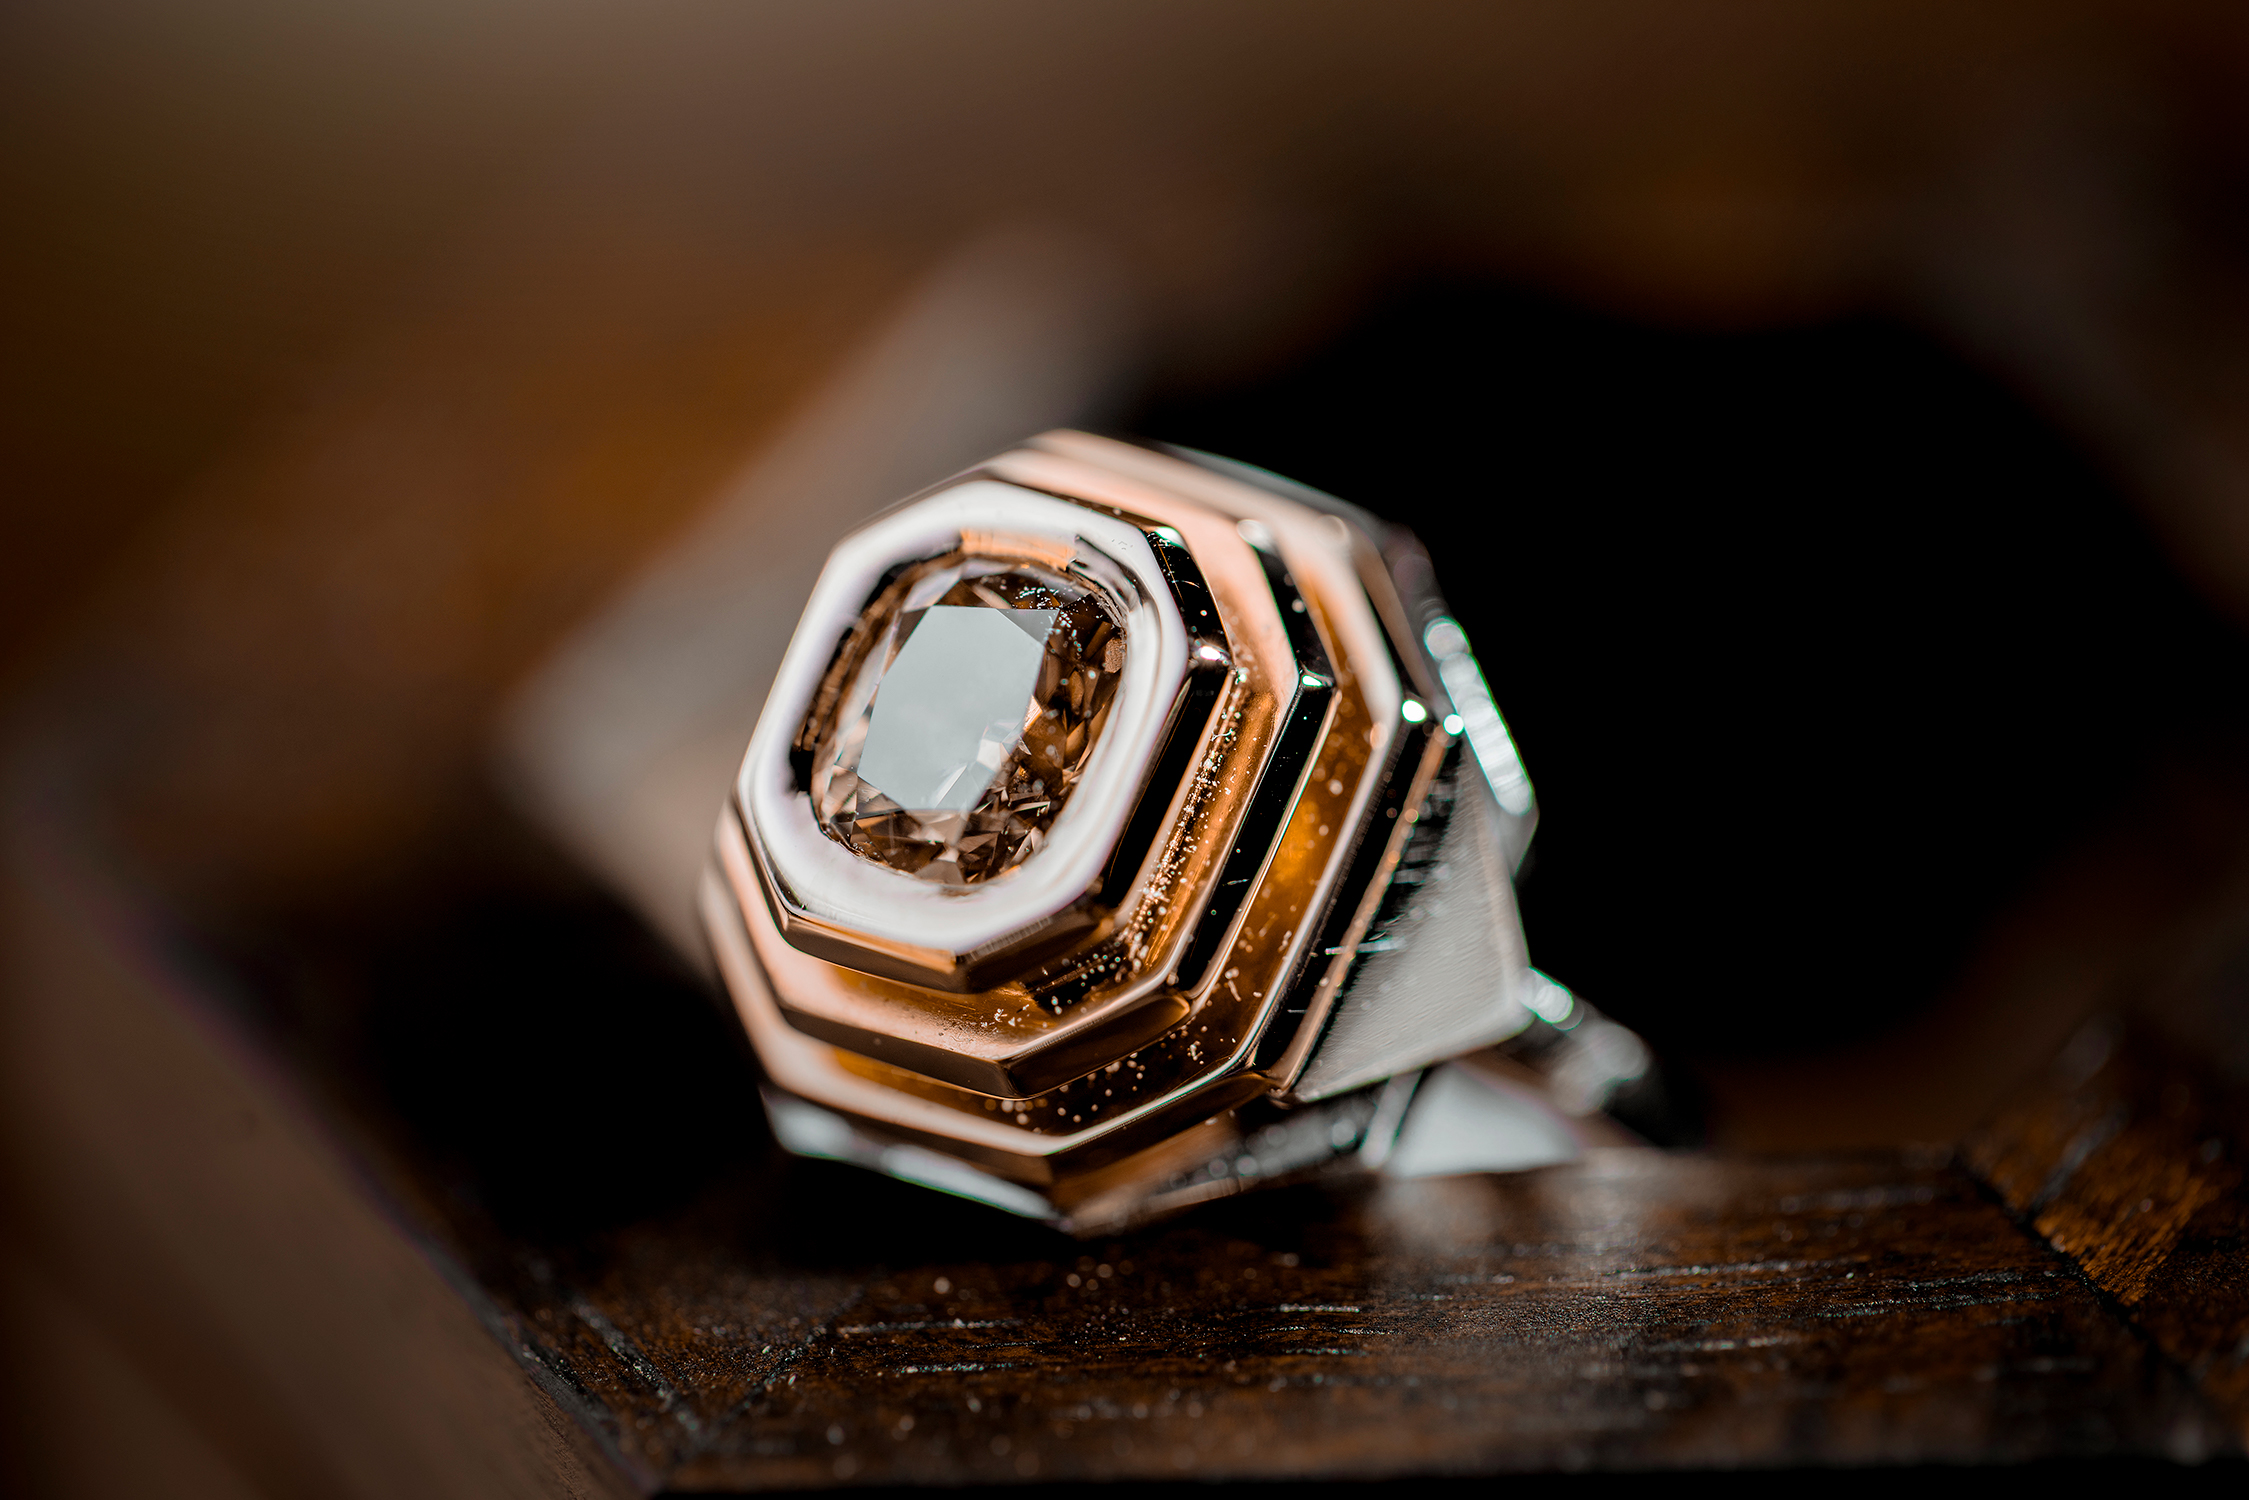 rose-and-crown-melbounre-gold-silver-rings-deco-luxury-australian_04.jpg